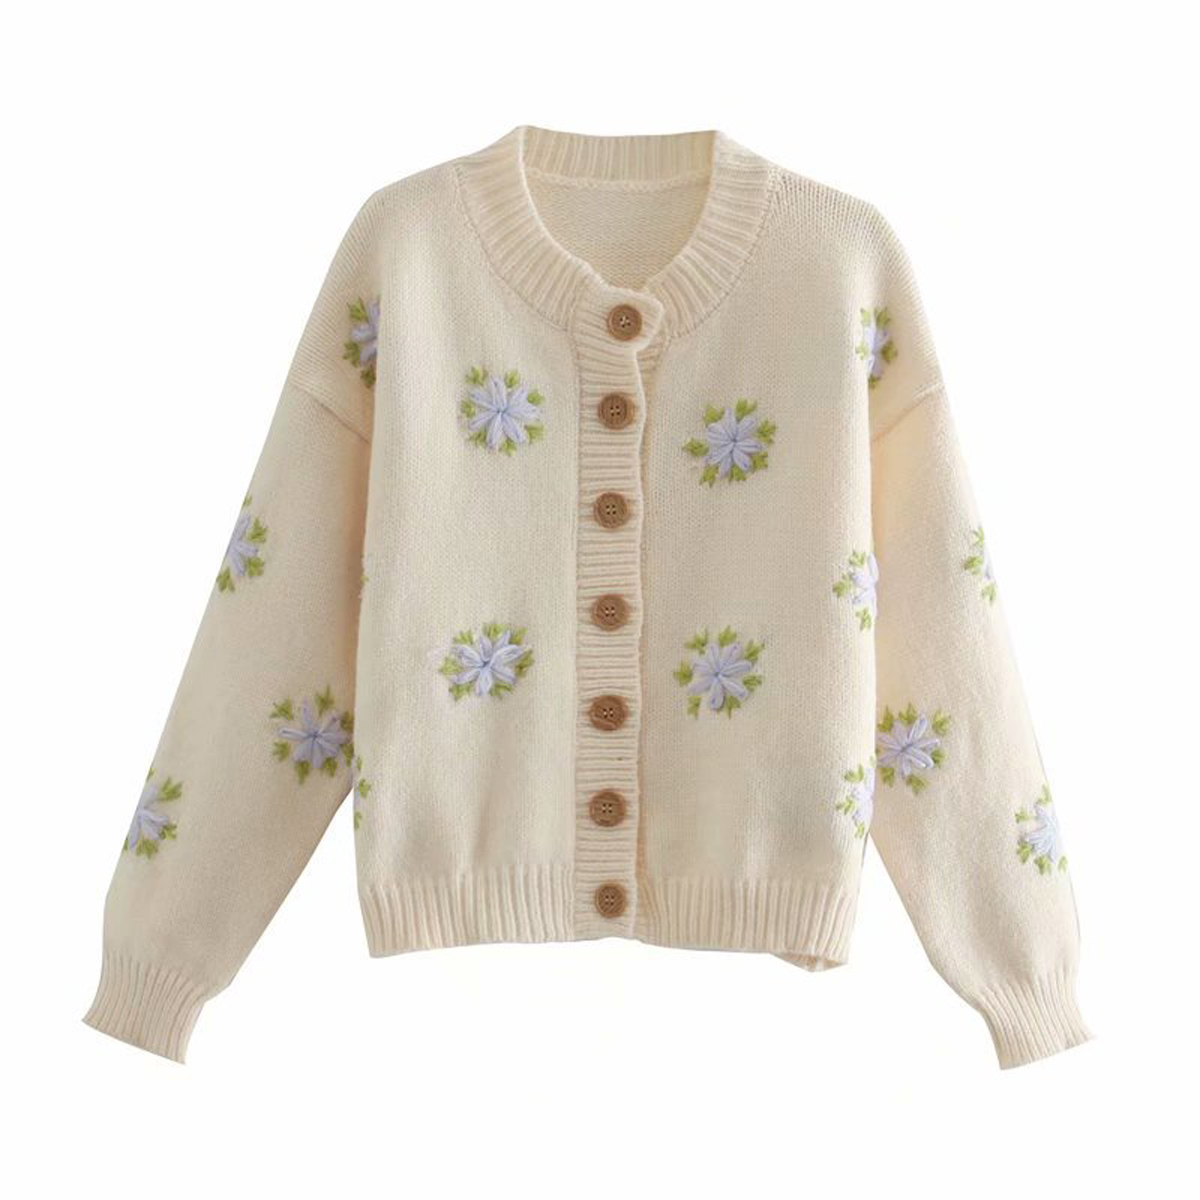 R.Vivimos Womens Cotton Crew Neck Floral Embroidery Button Down Knit Cardigan Sweater Coat